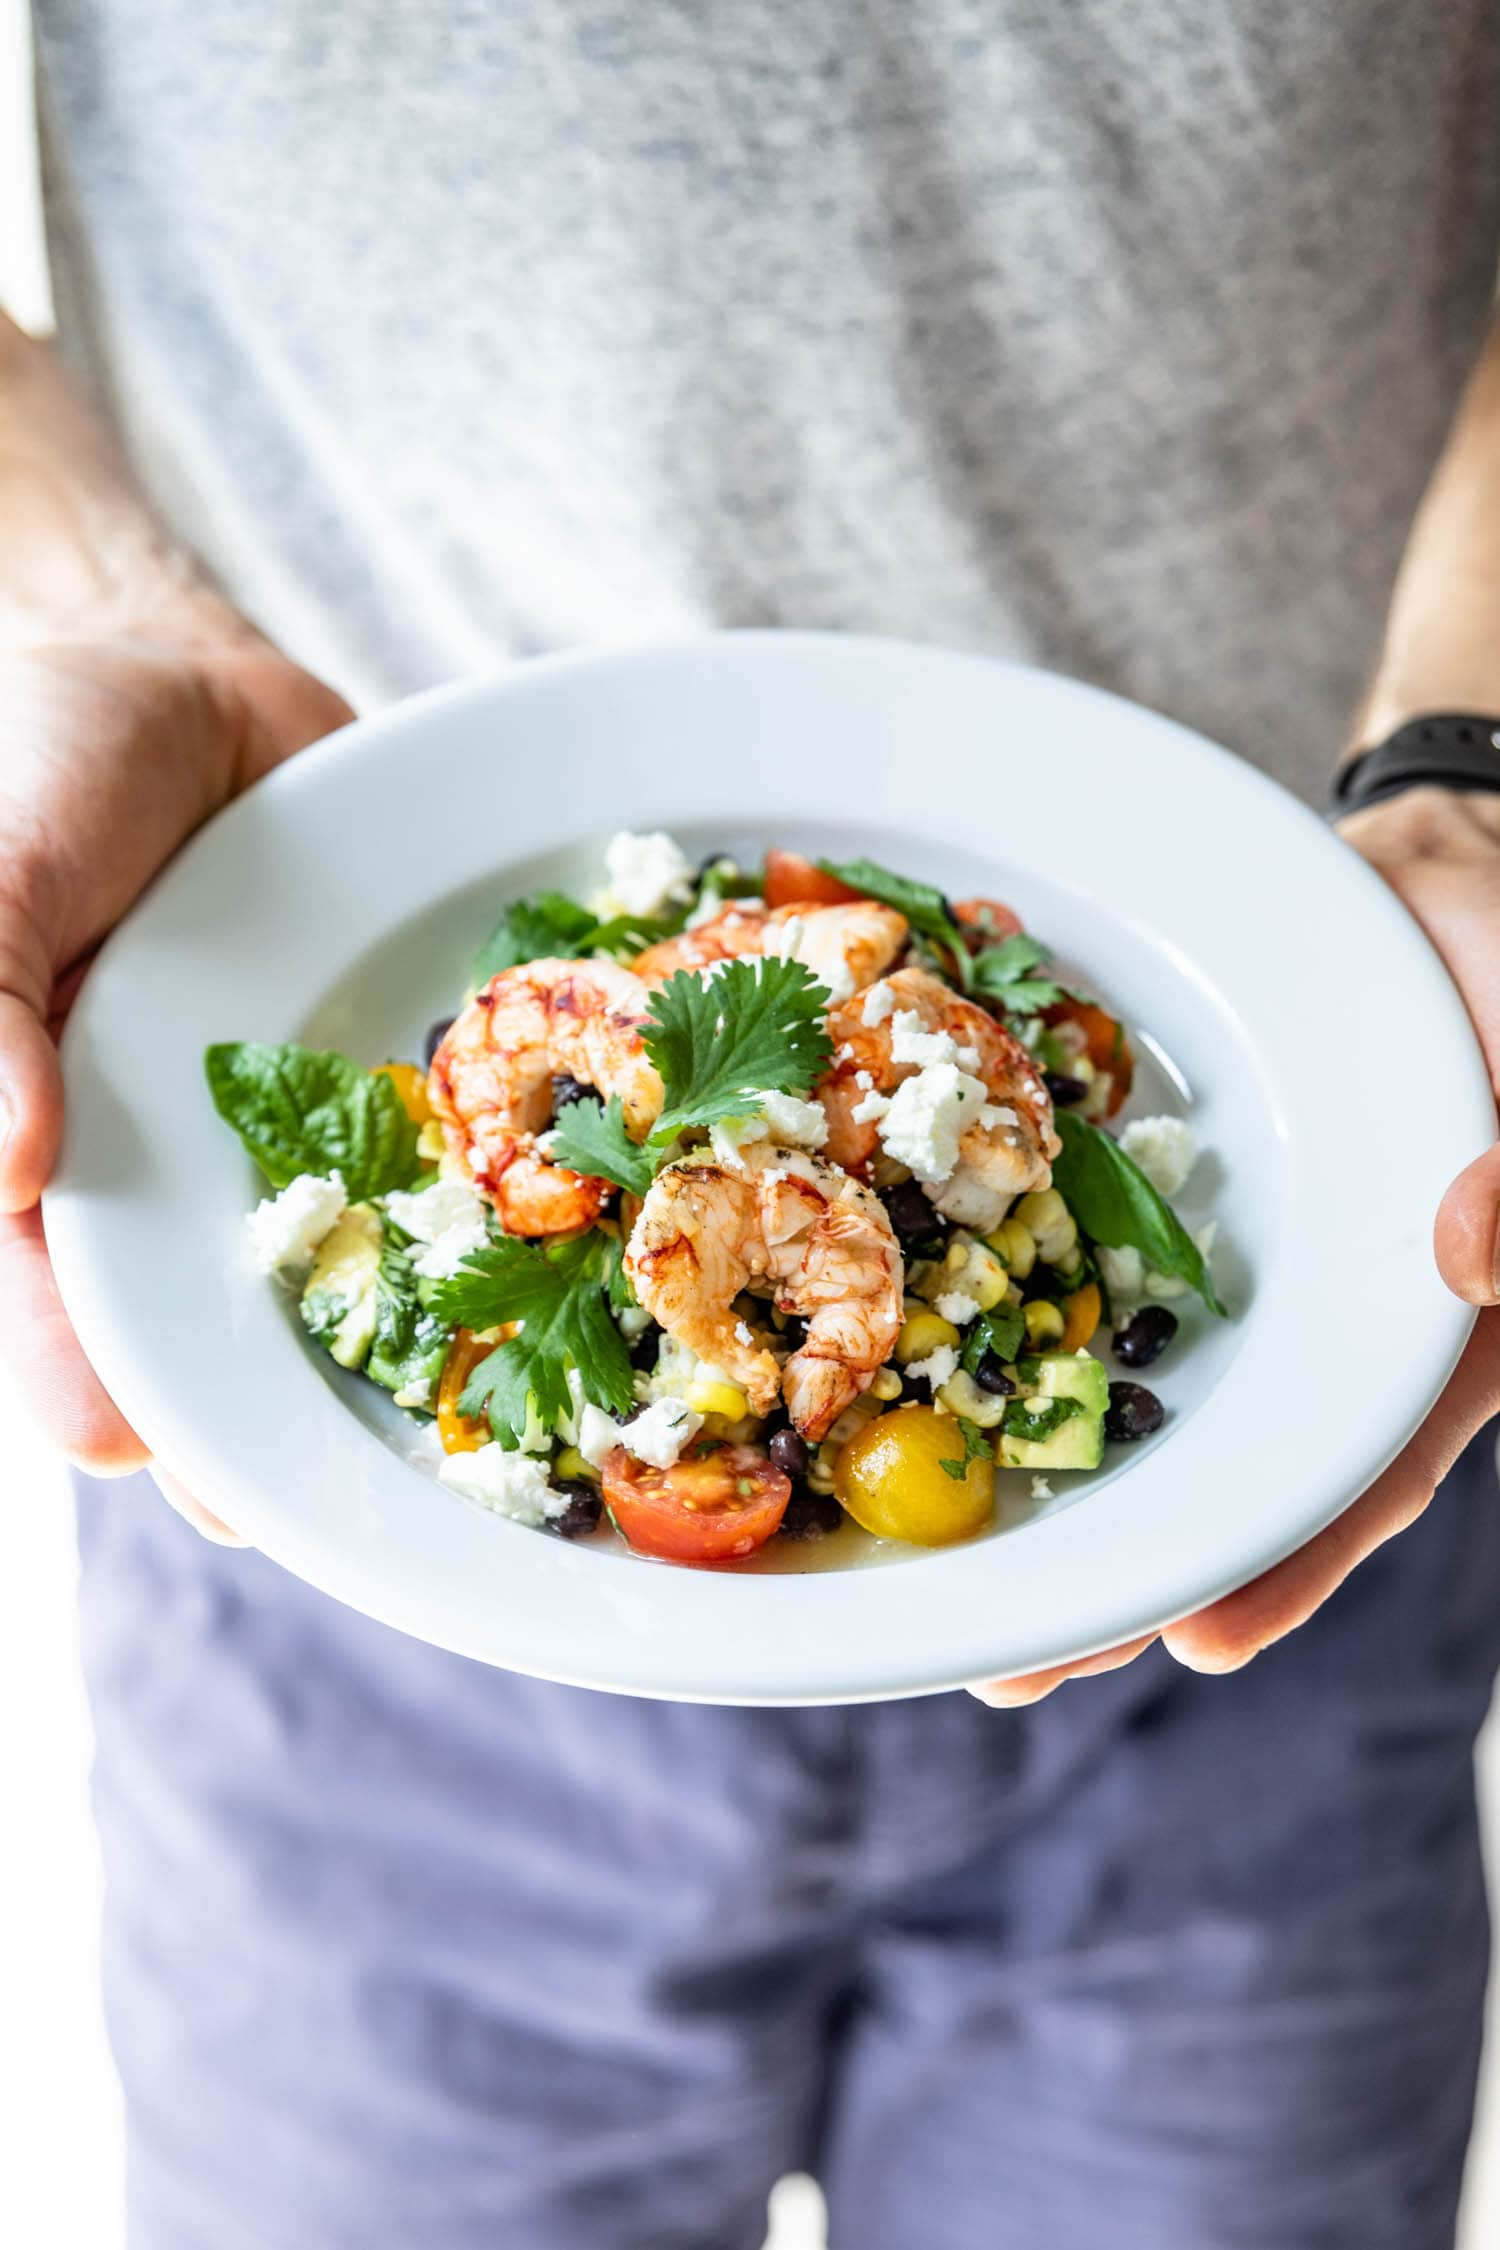 Two hands holding a plate of grilled tequila lime shrimp on a bed of cherry tomatoes, corn and cilantro and sprinkled with feta cheese